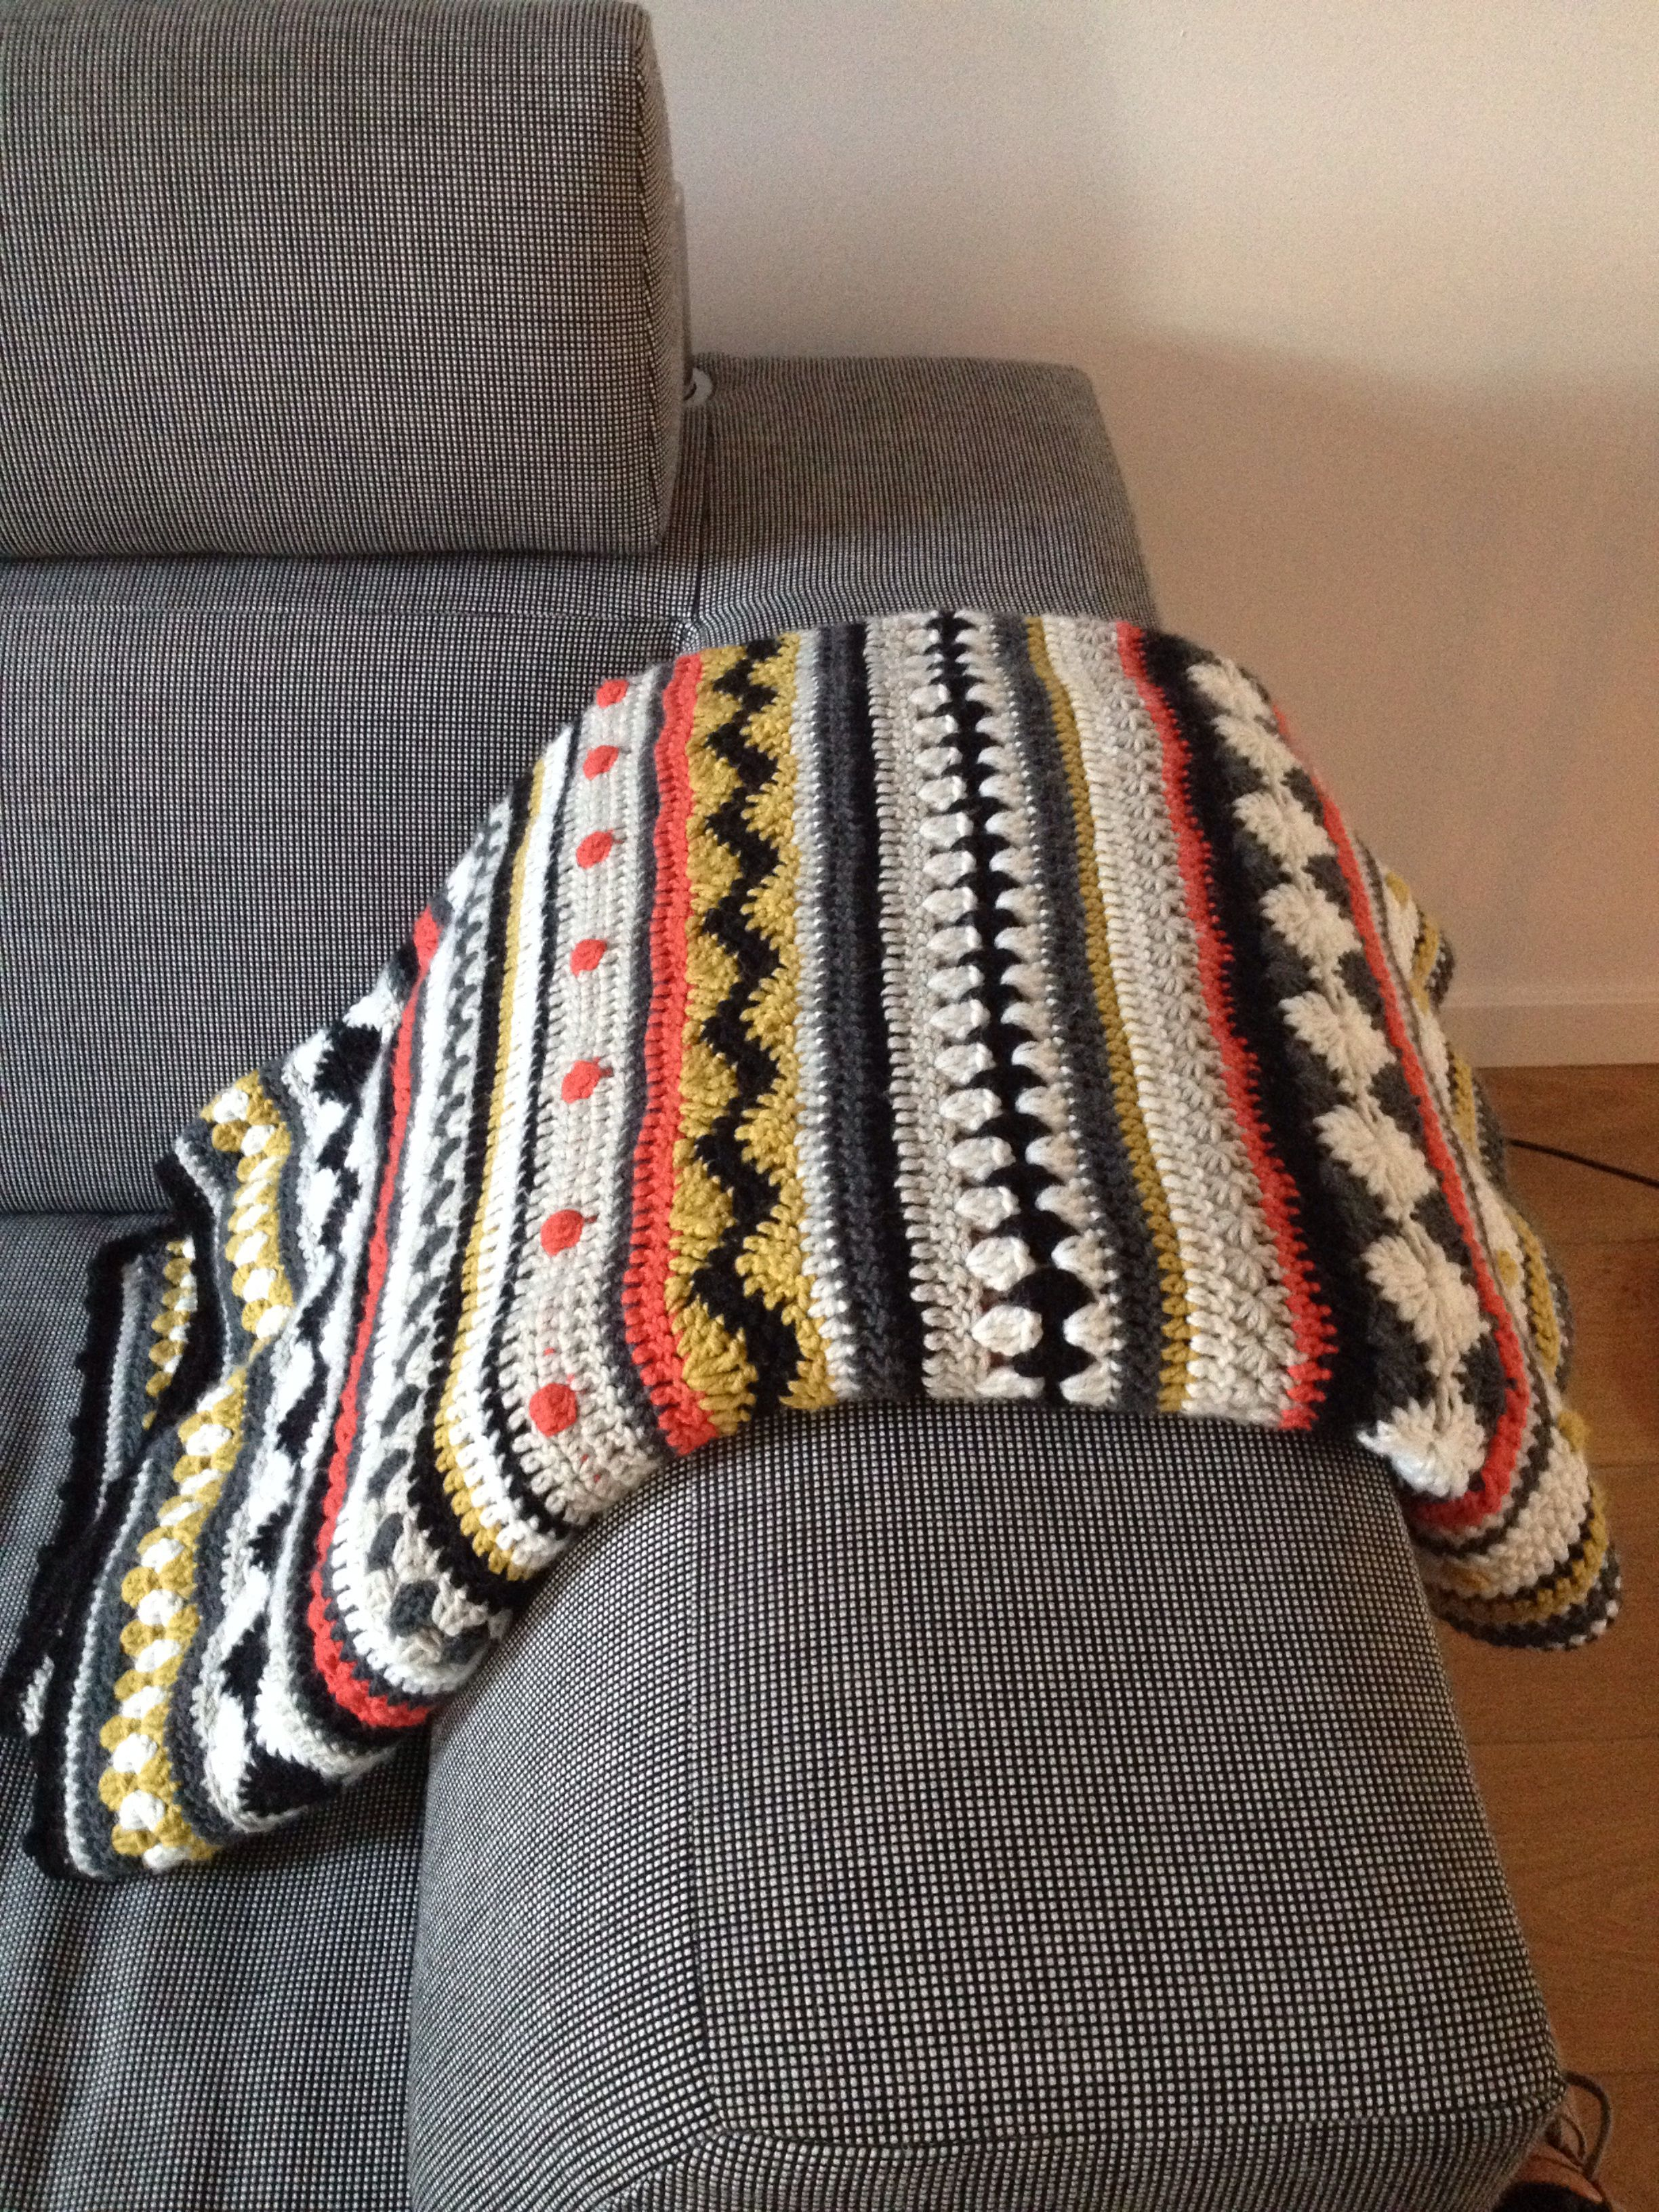 As-we-go stripey blanket